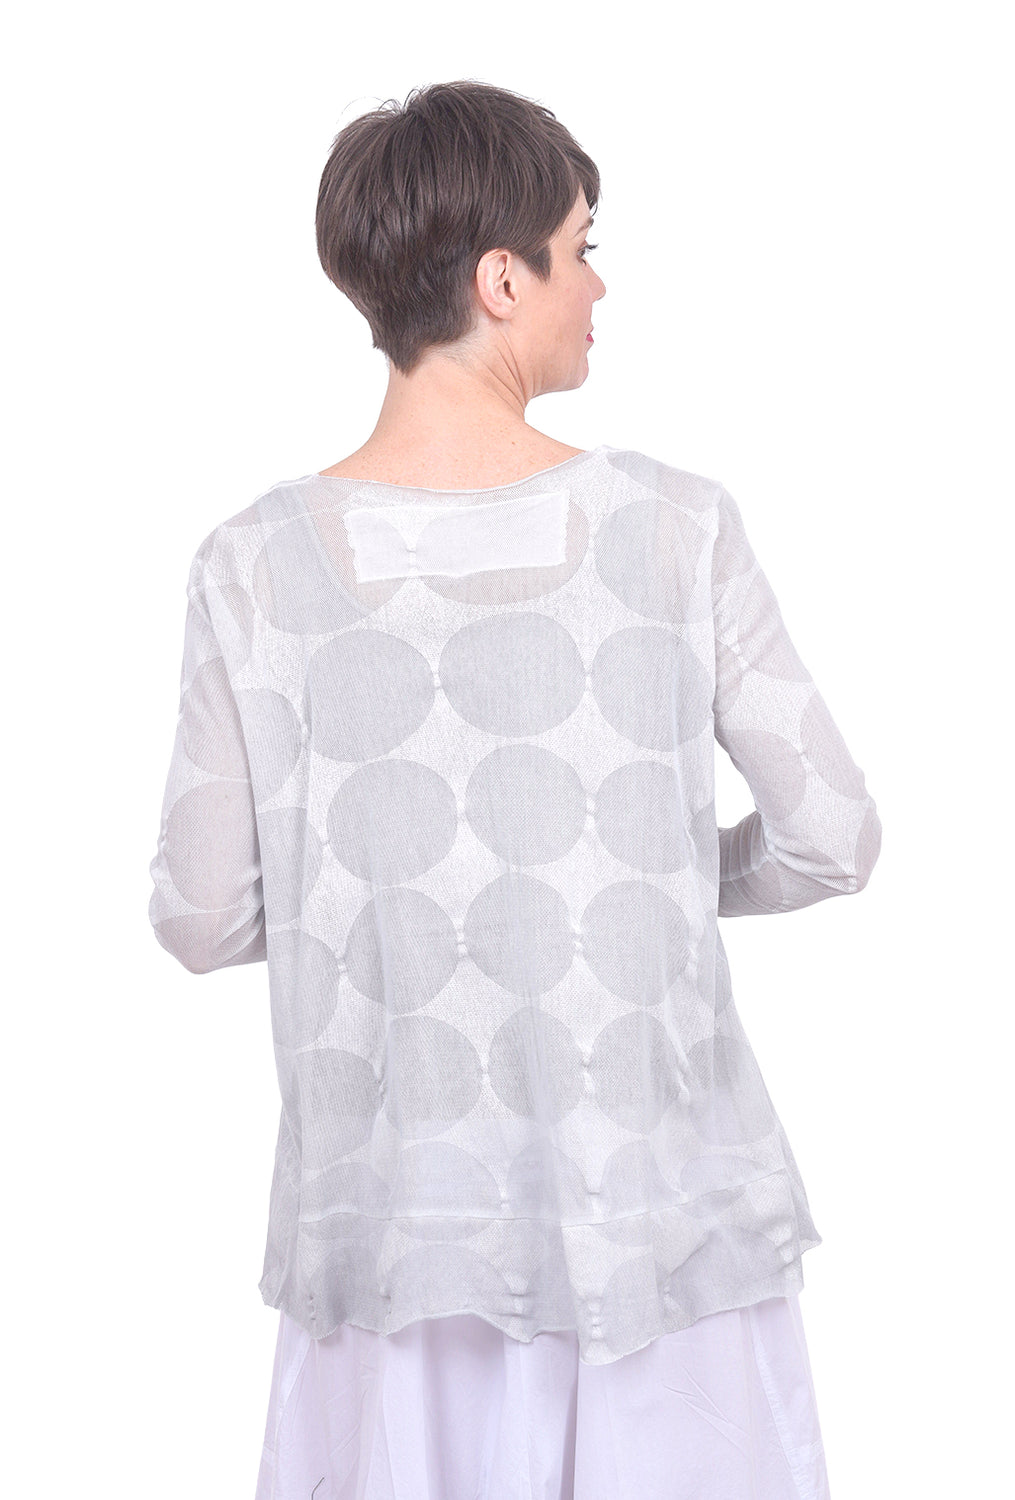 Rundholz Black Label L/S Mesh Dots Tee, Gray